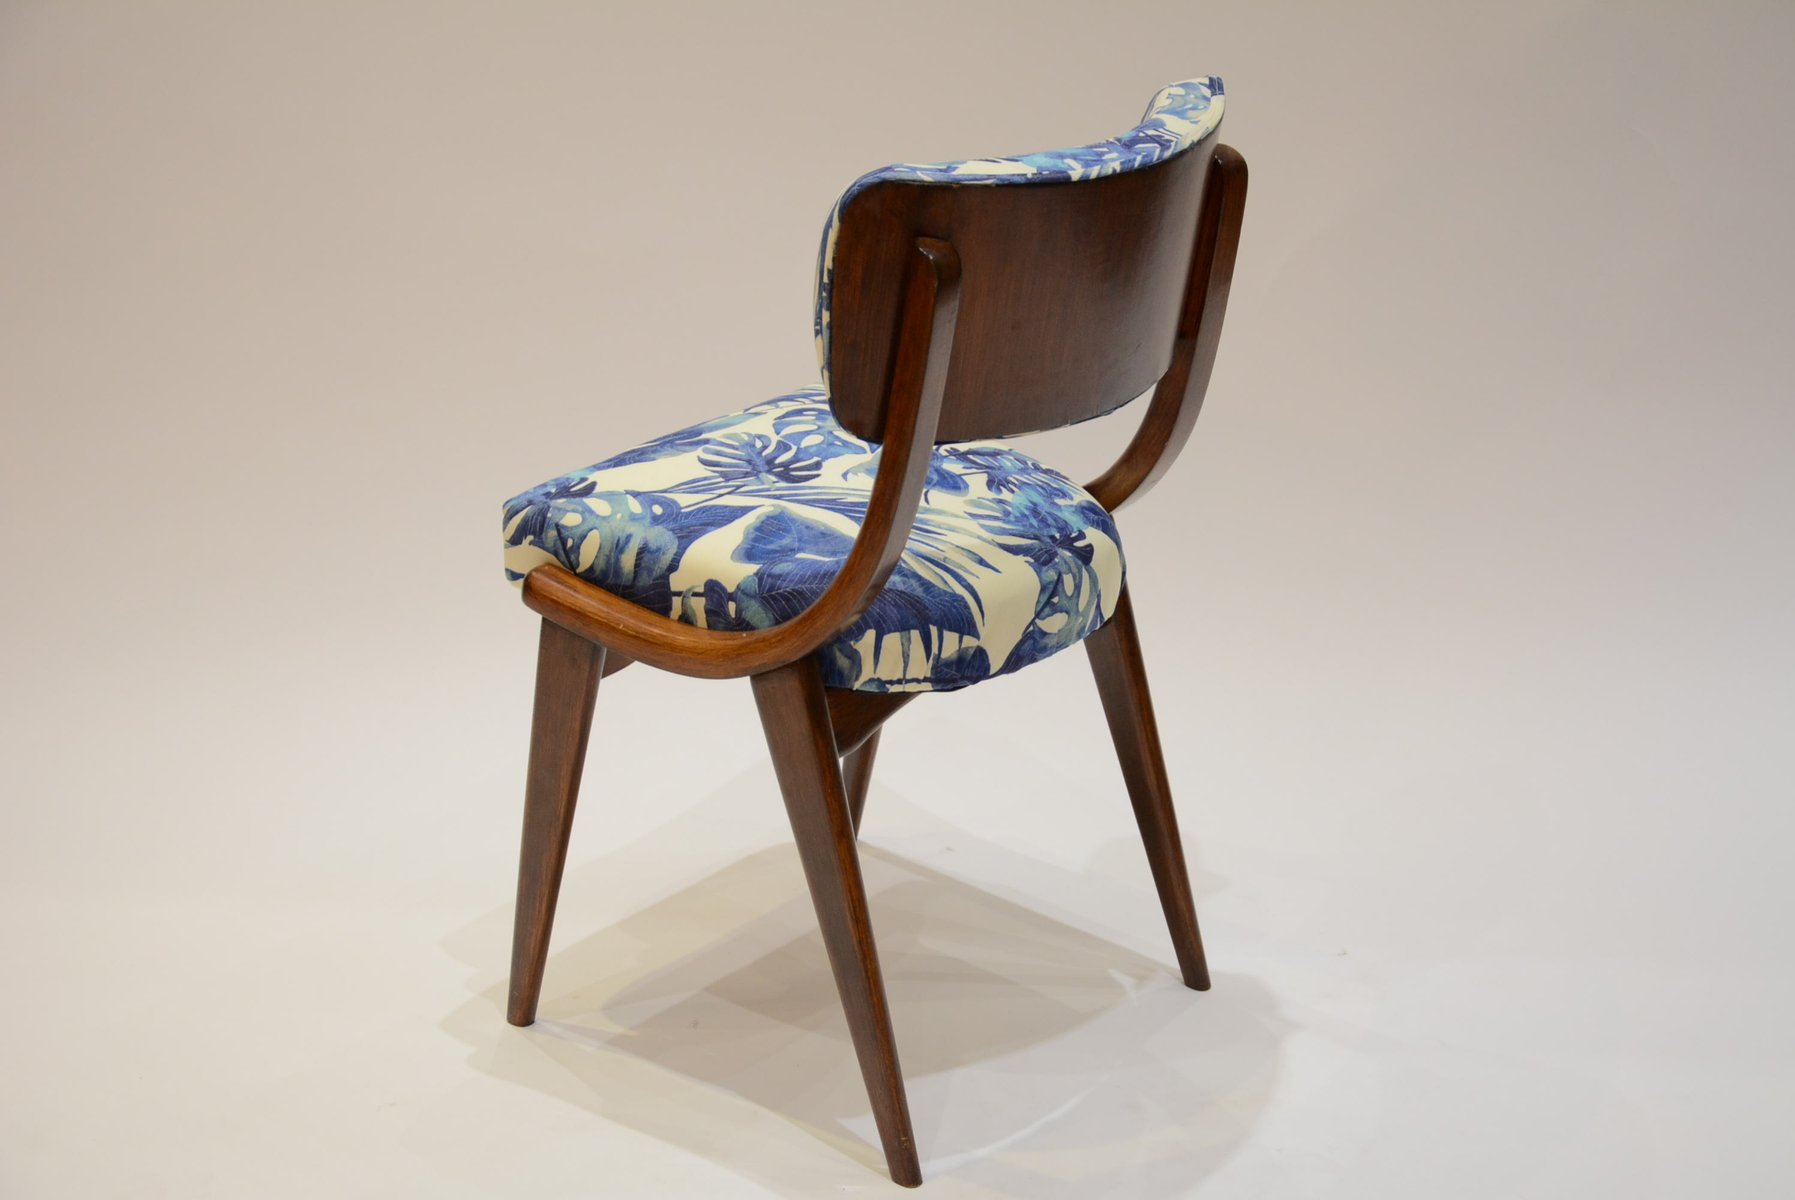 Vintage Chairs 1960s Set Of 2 For Sale At Pamono